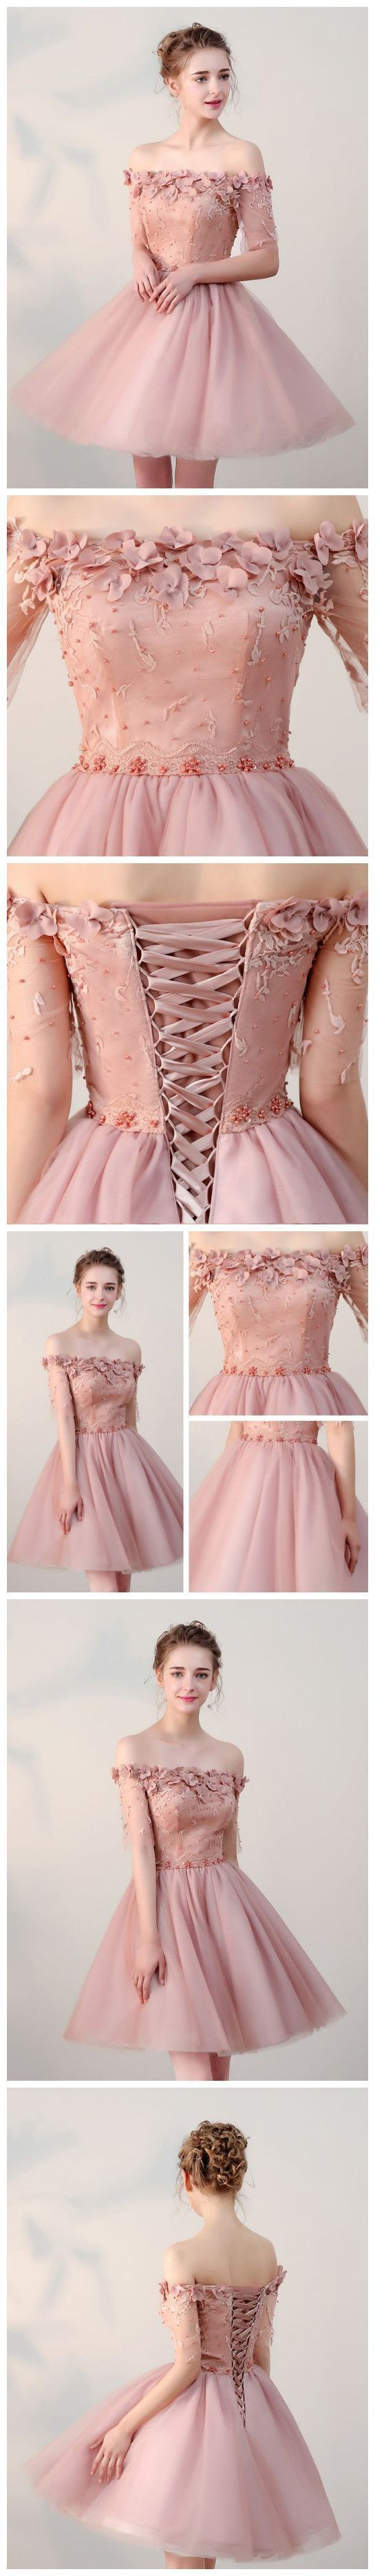 CHIC HOMECOMING DRESSES SHORT PEARL PINK OFF-THE-SHOULDER TULLE CHEAP PROM DRESS AM022 #custommadeclosets #HomecomingDress #homecomingdresses #homecomingdressesshort